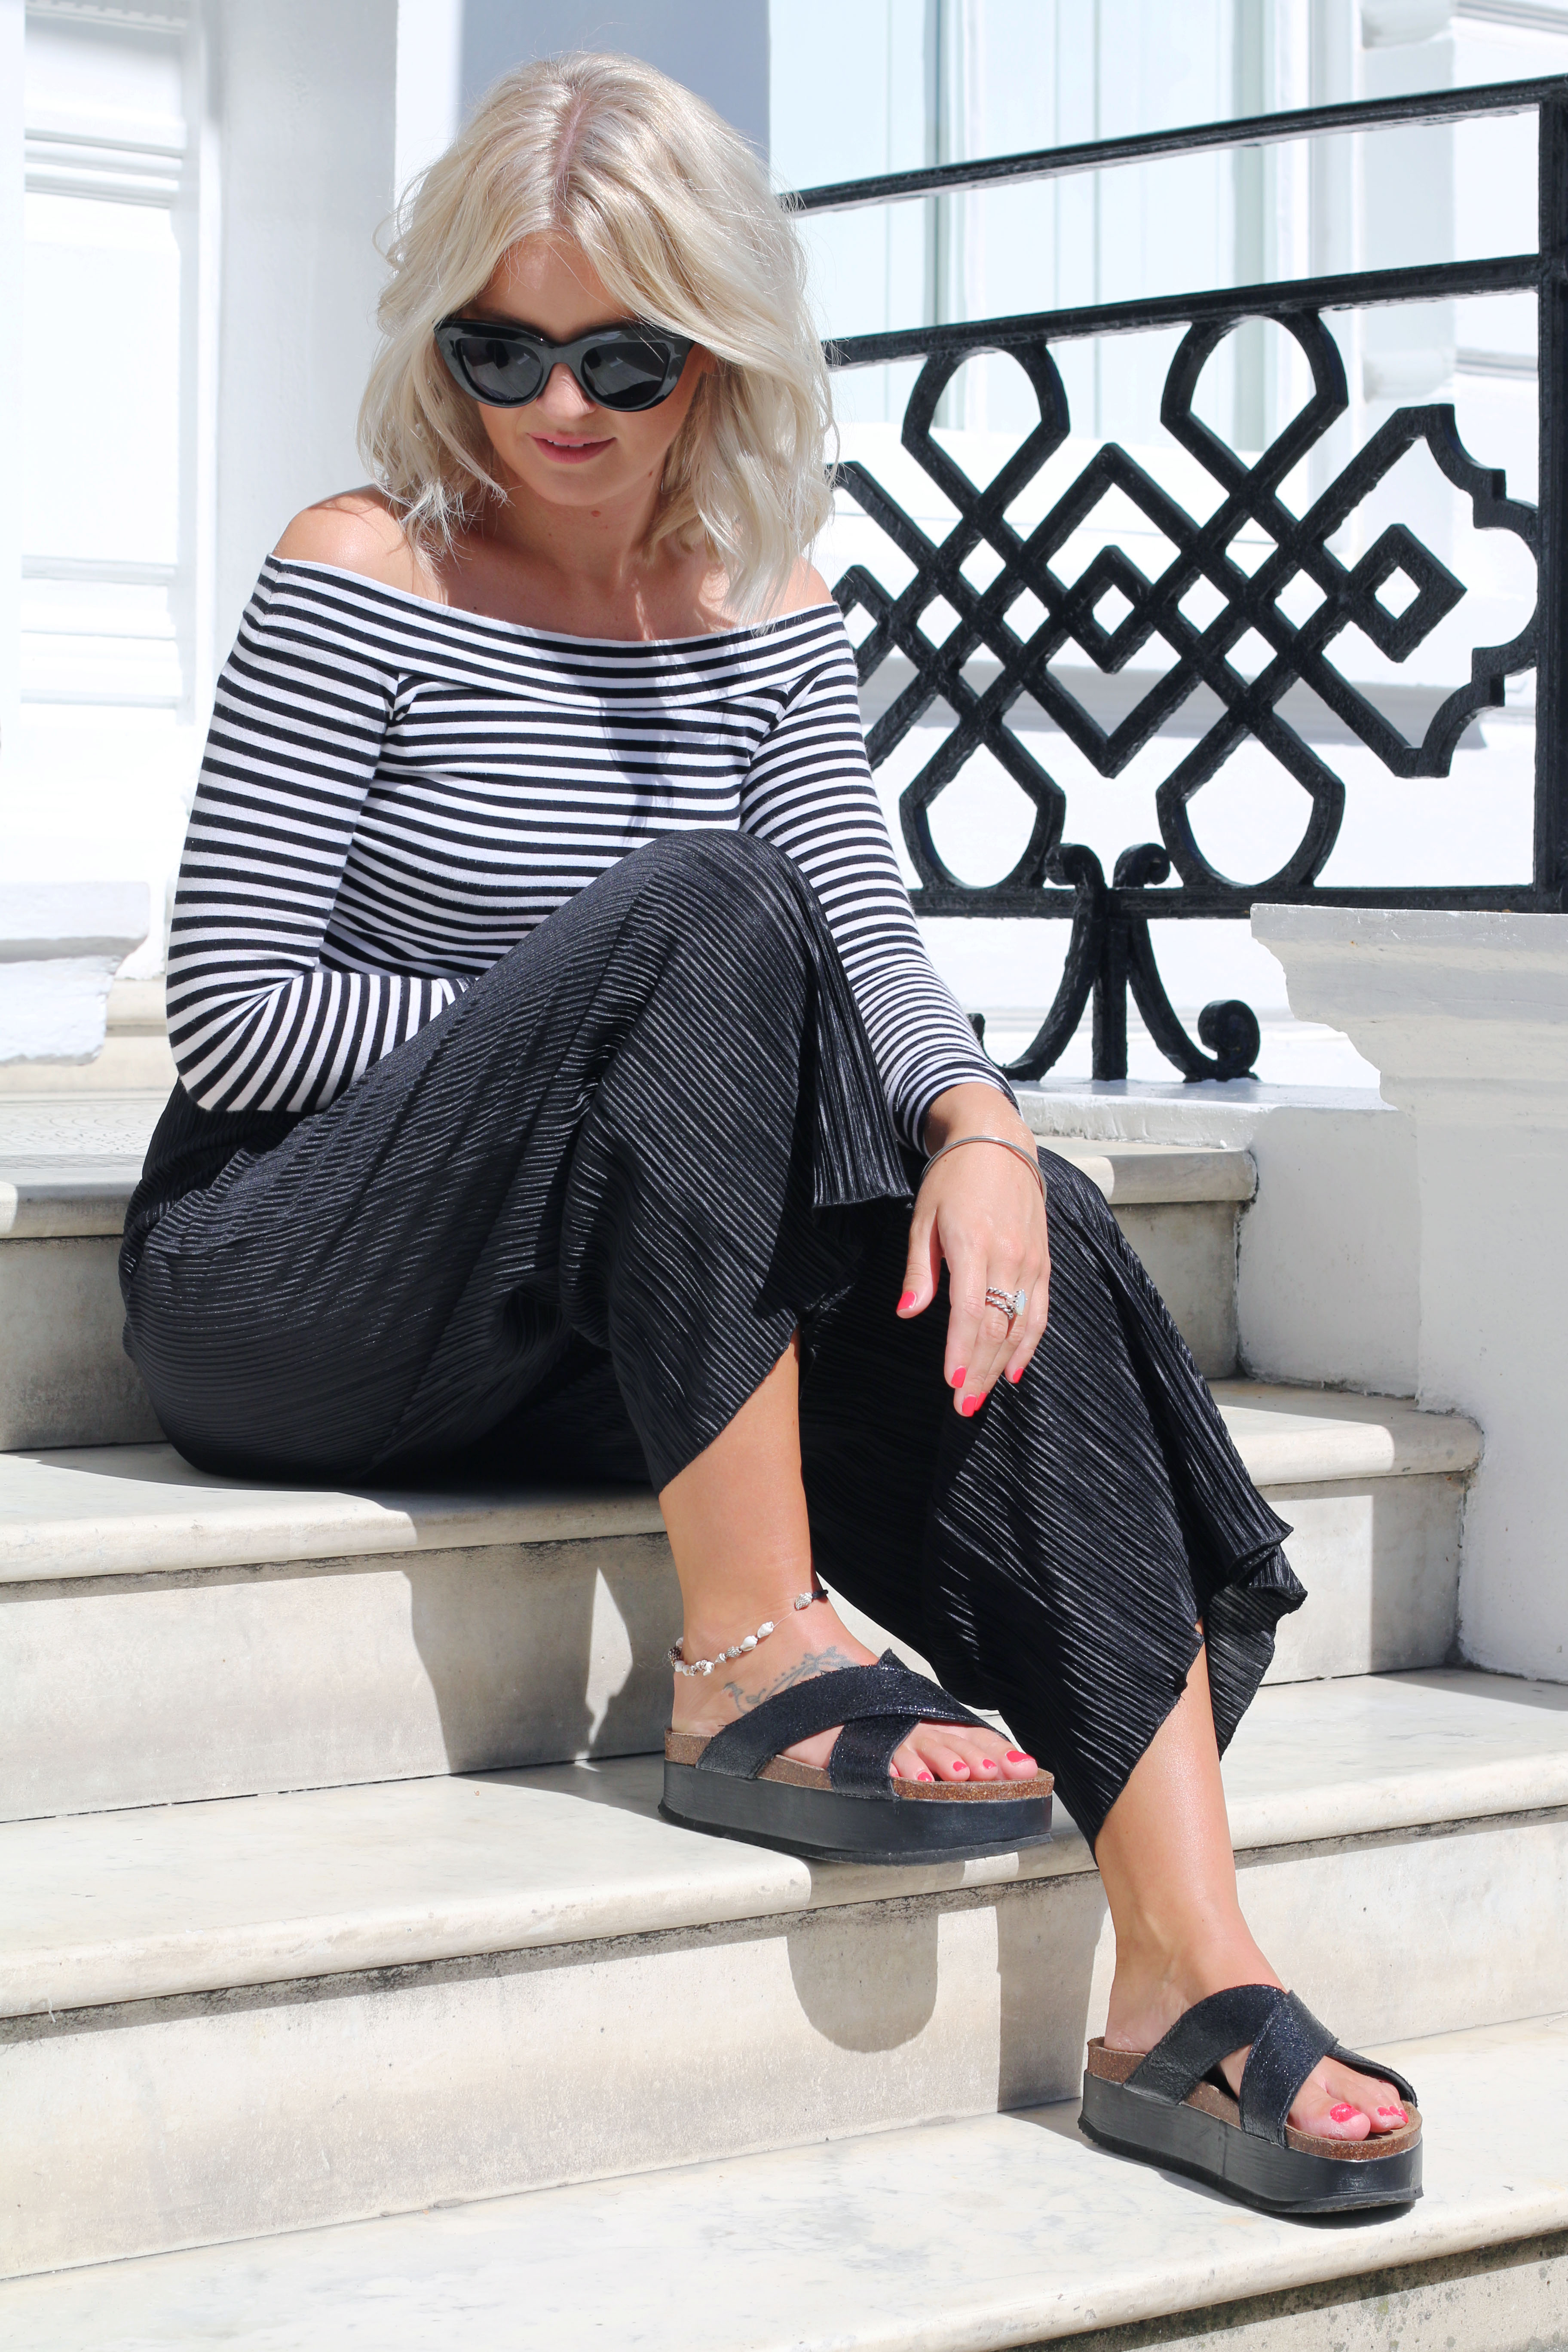 laura byrnes, lauras little locket, lydia collins photography, stripe bardot top, bardot top, culottes, pleated culottes, flatform sliders, black cat eye sunglasses, blonde wavy hair, LOB, ash wavy hair, south kensington